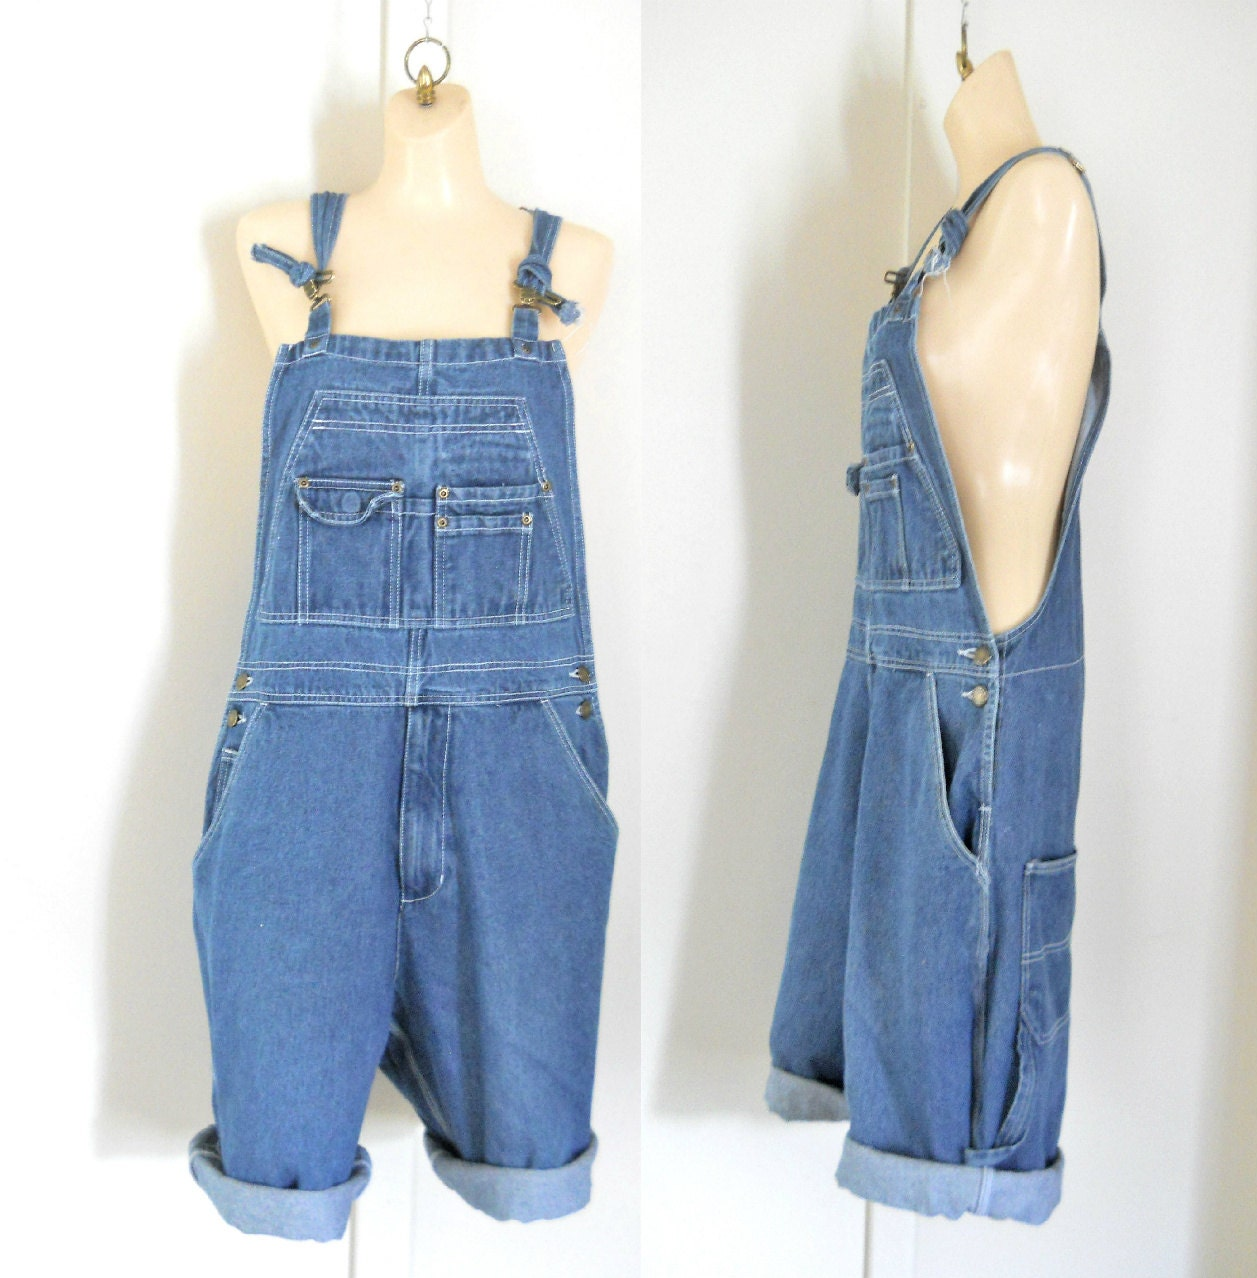 Bib Overall Shorts Perfect for easy summer styling, our latest range of women's dungaree shorts come in your favourite styles, colours and washes. Choose from classic fit denim dungaree shorts, easy to wear slouchy loose fit Bib-shorts or summery coloured cotton shorts.